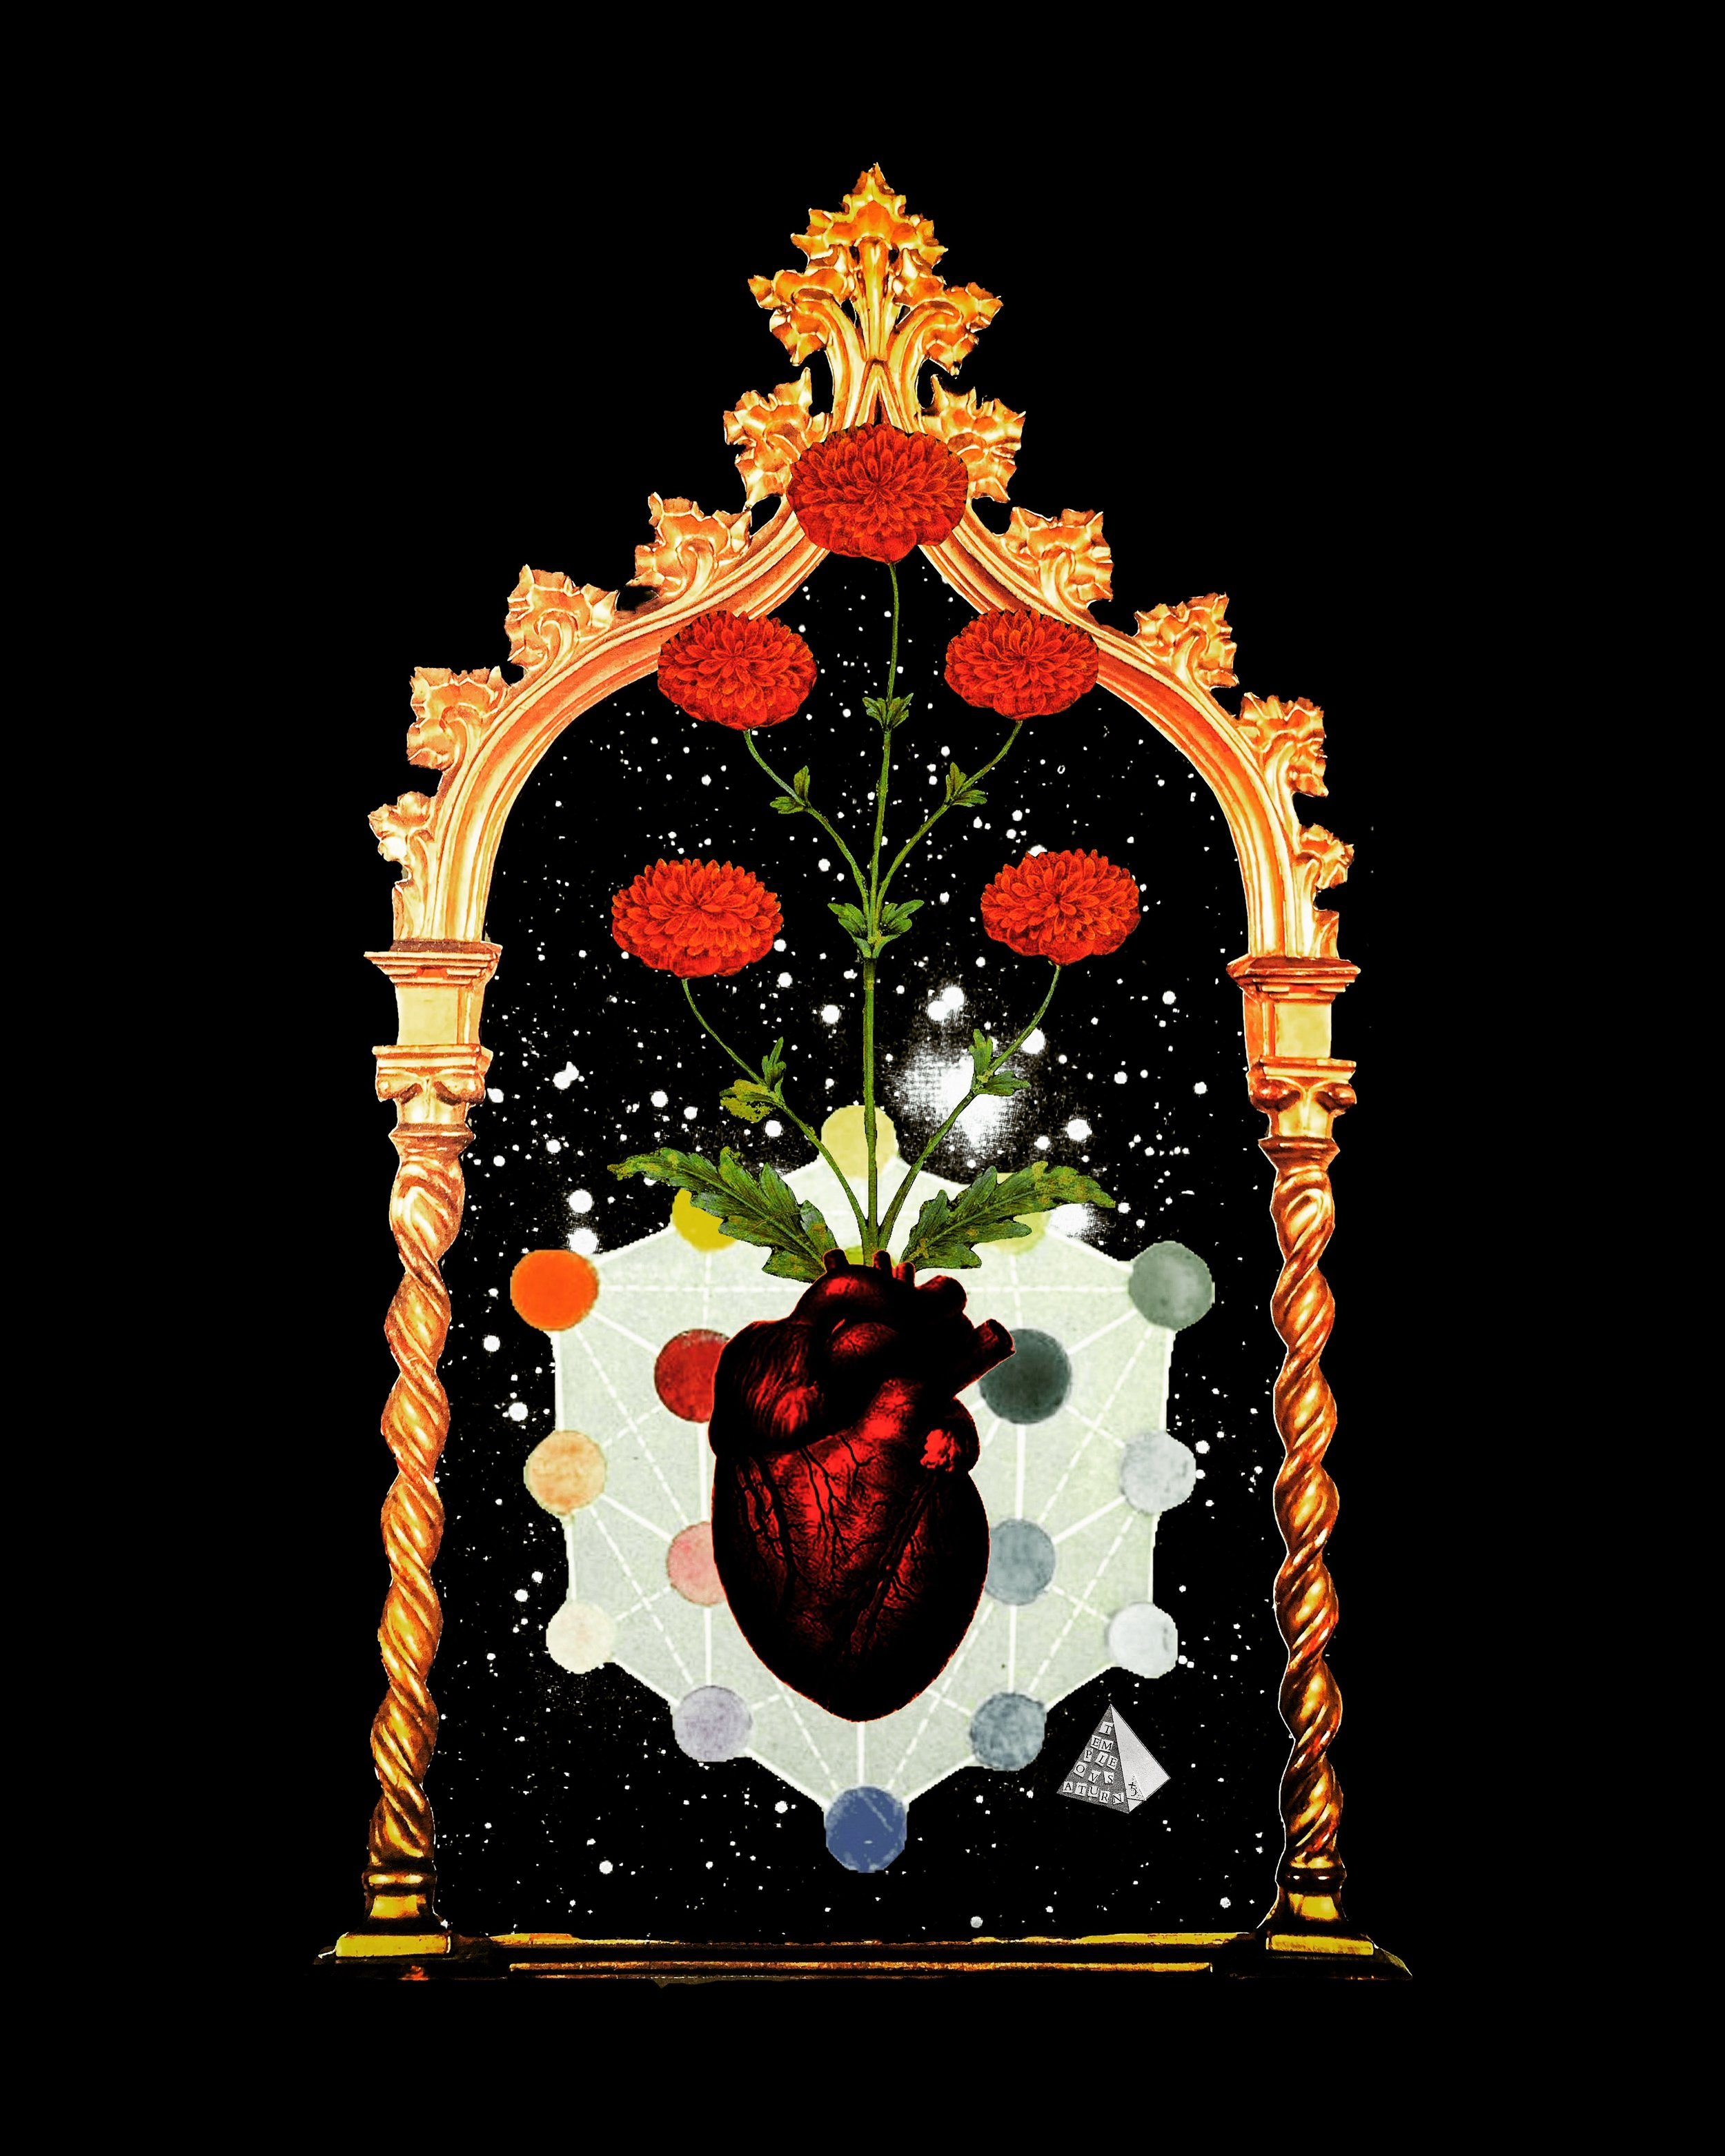 Sacred Heart by Joan Pope (Temple ov Saturn)